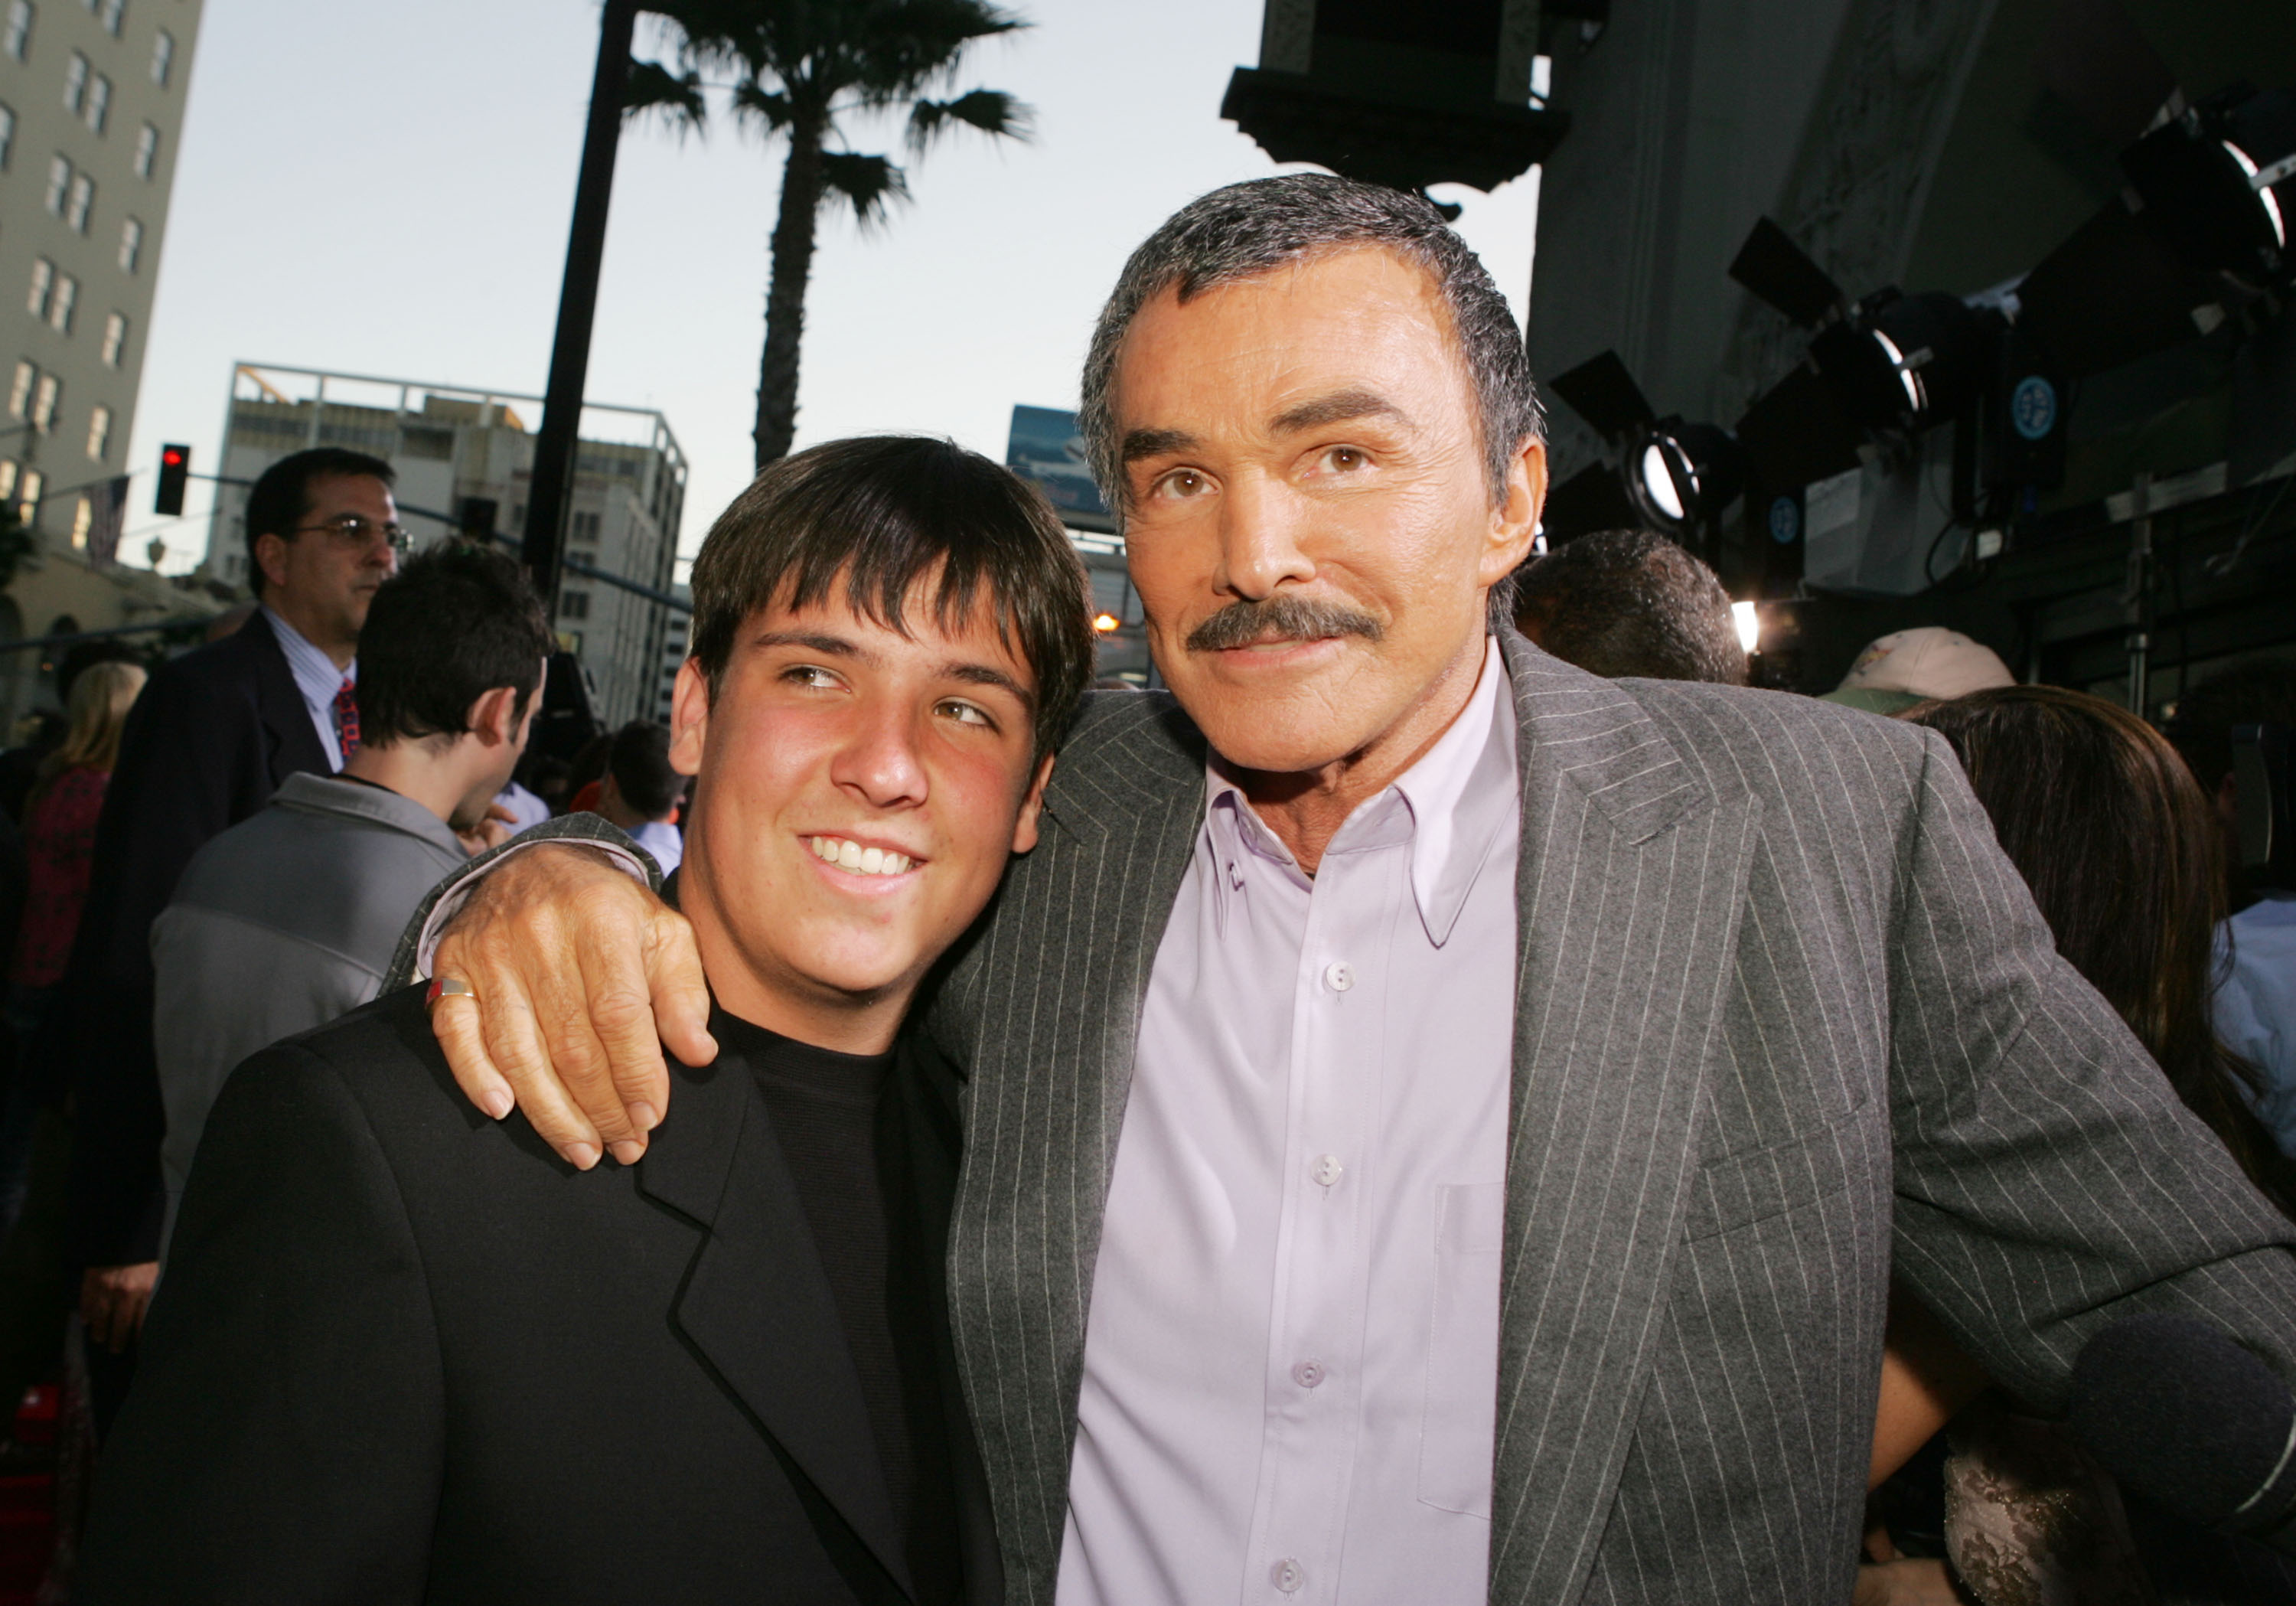 Actor Burt Reynolds and his son Quinton arrive at the premiere of Paramount Pictures' 'The Longest Yard' at the Chinese Theater on May 19, 2005 in Los Angeles, California.